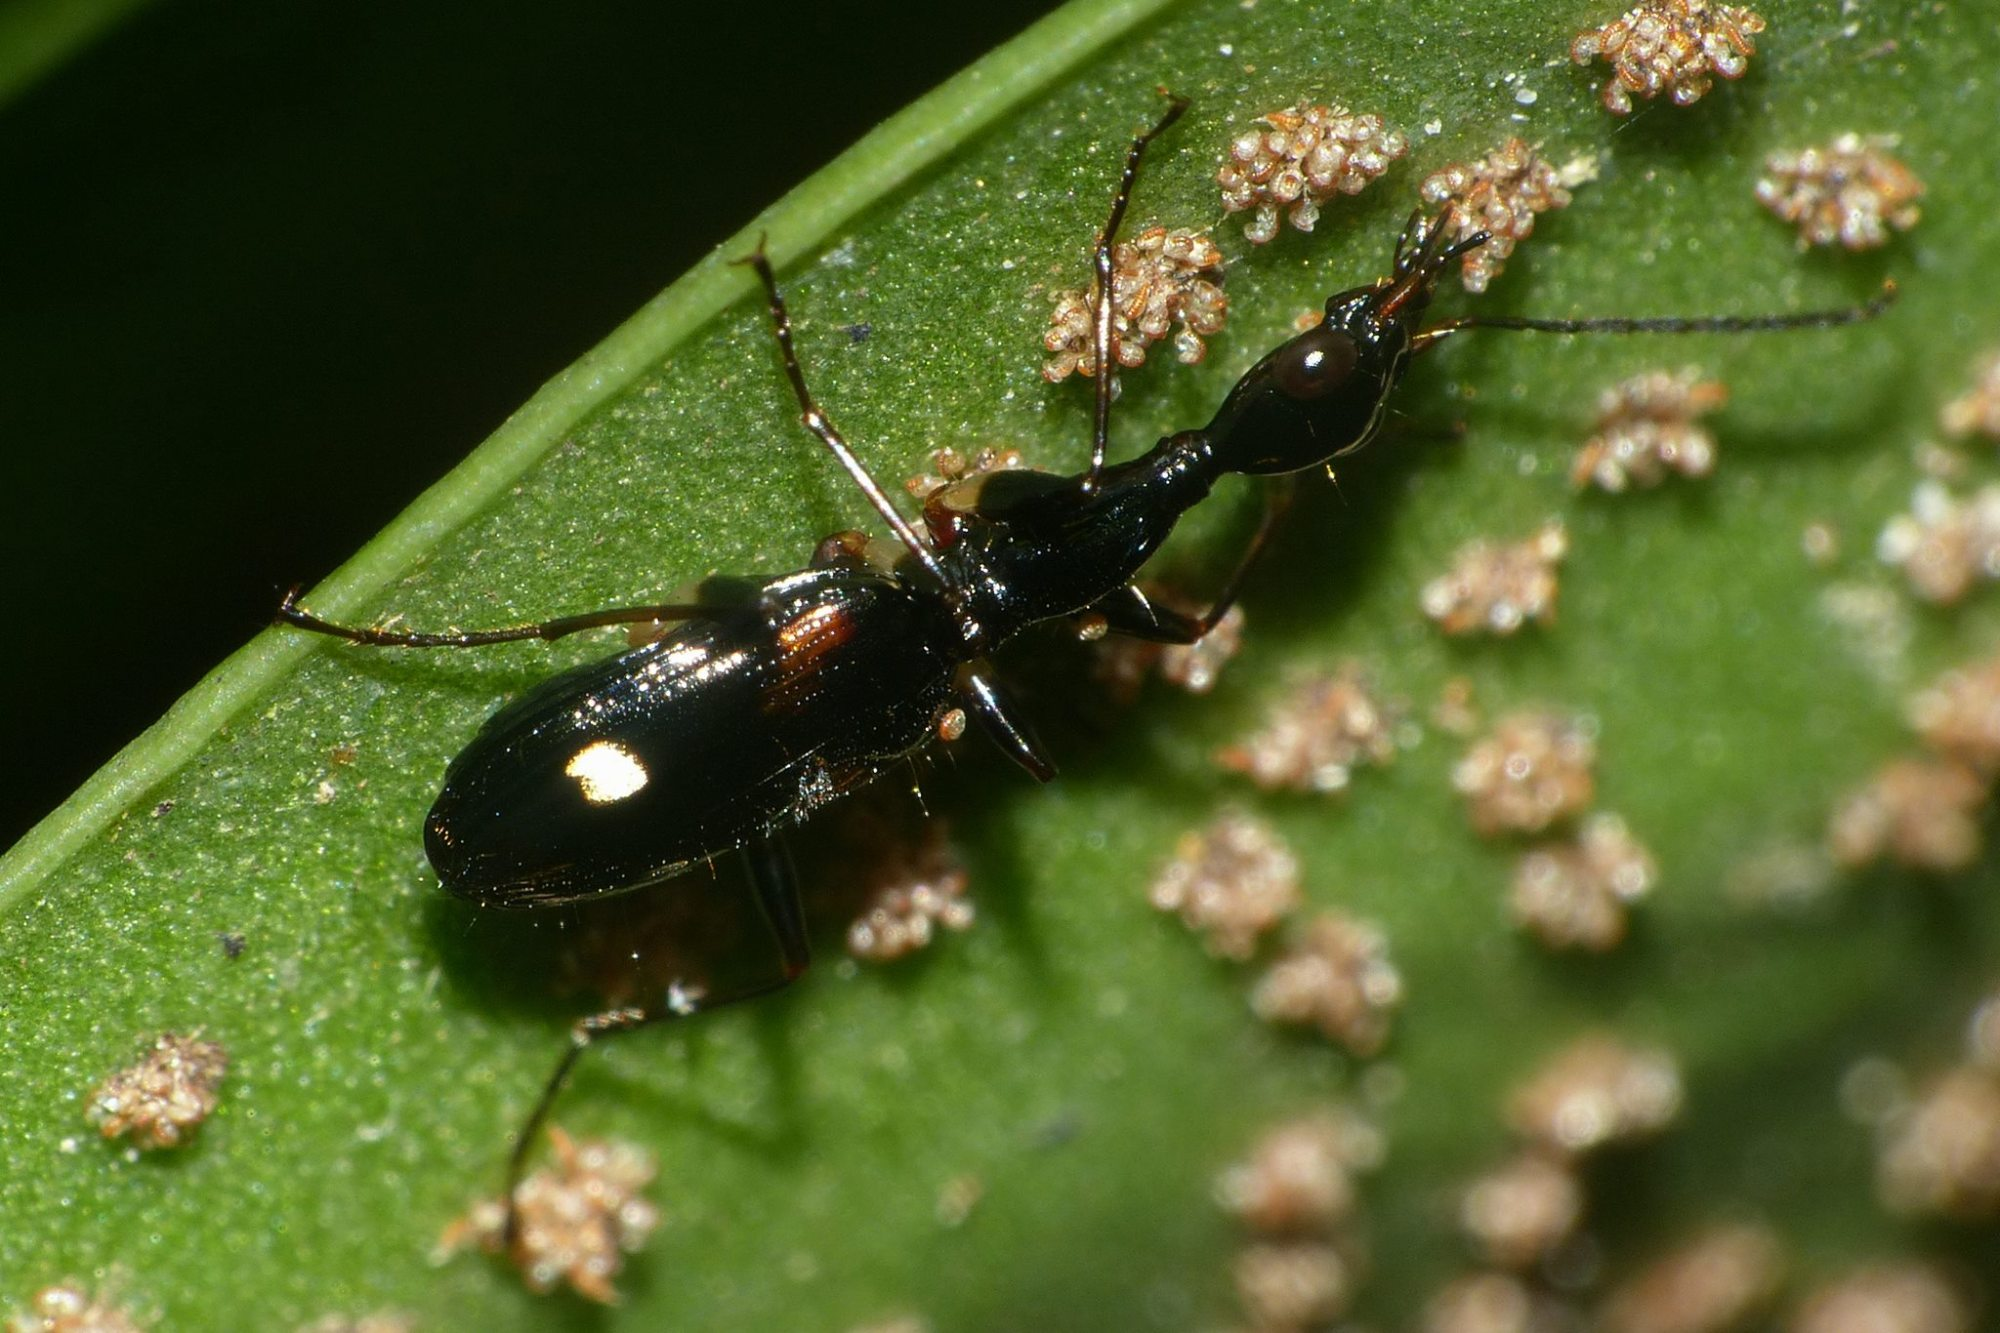 hight resolution of fern spore feeding carabid image by blackdog to chan